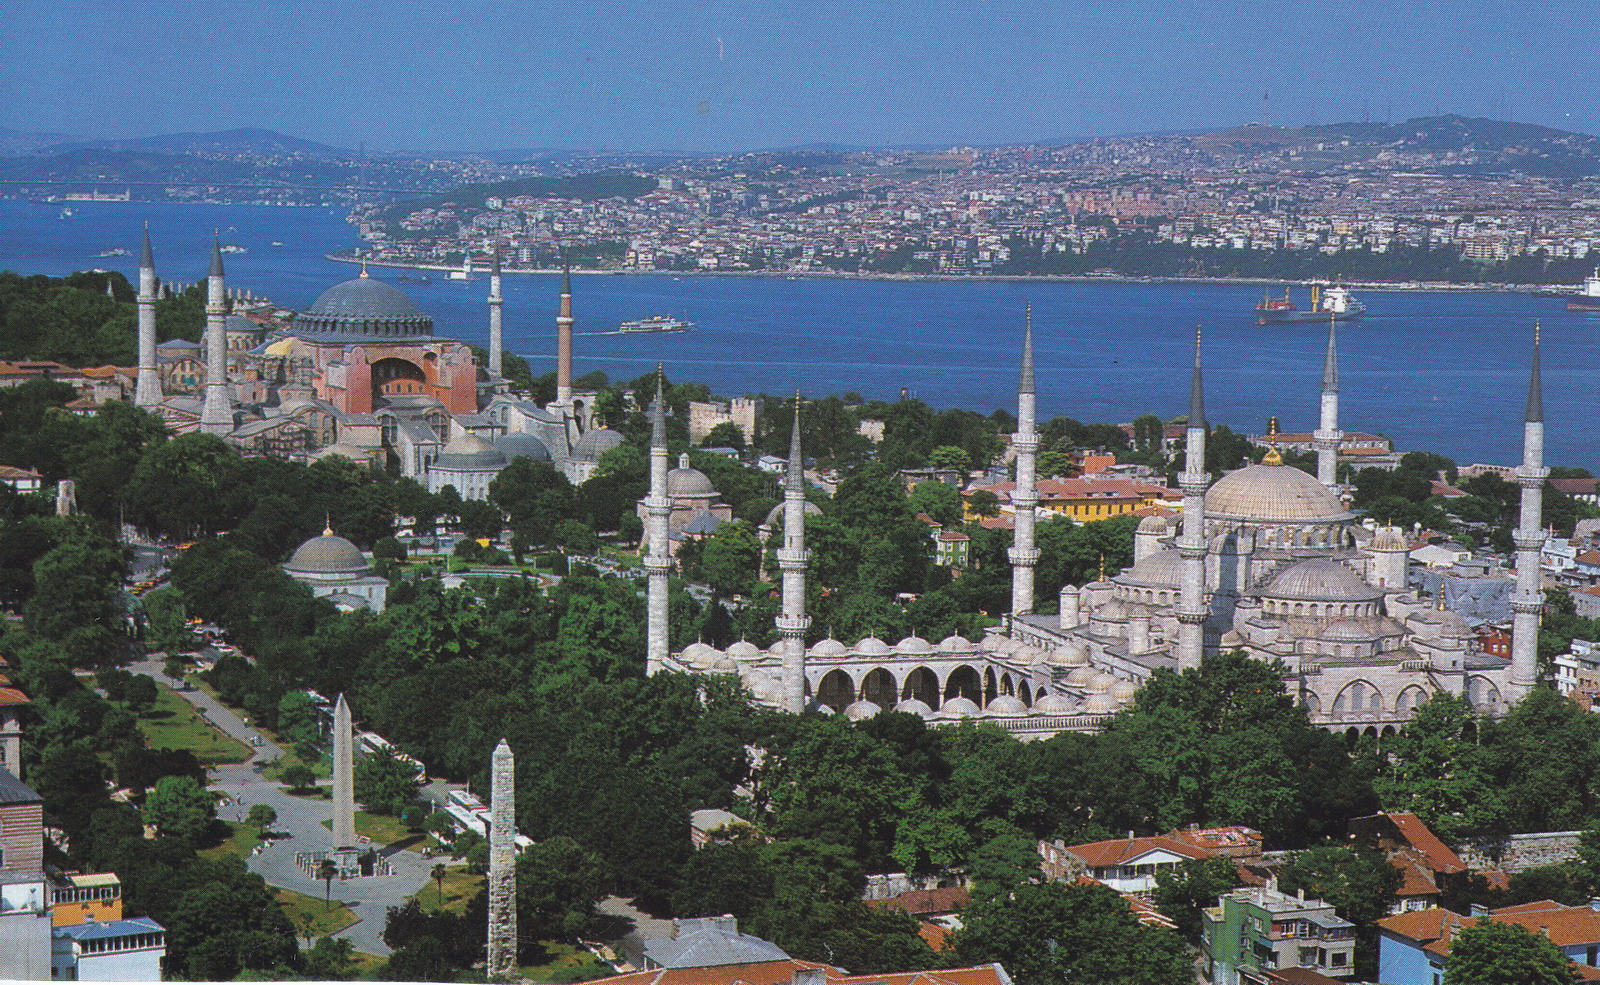 istanbul-hagia-sophia-blue-mosqueturkey-istanbul-right-sultan-ahmed-mosque-blue-mosque-doqvtsct